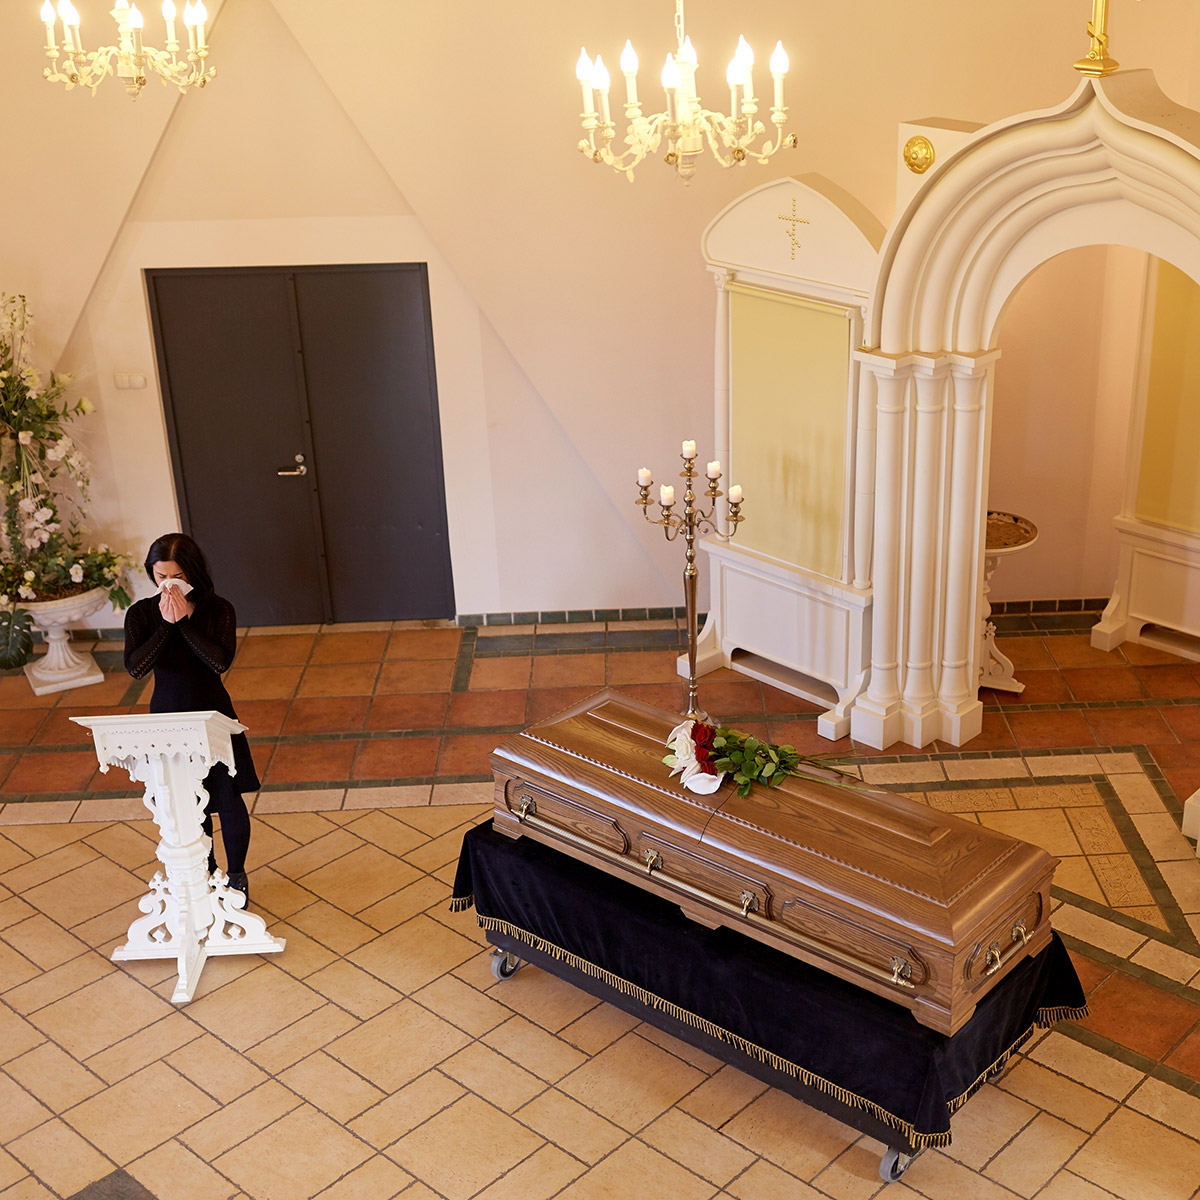 Funeral Services by Evergreen